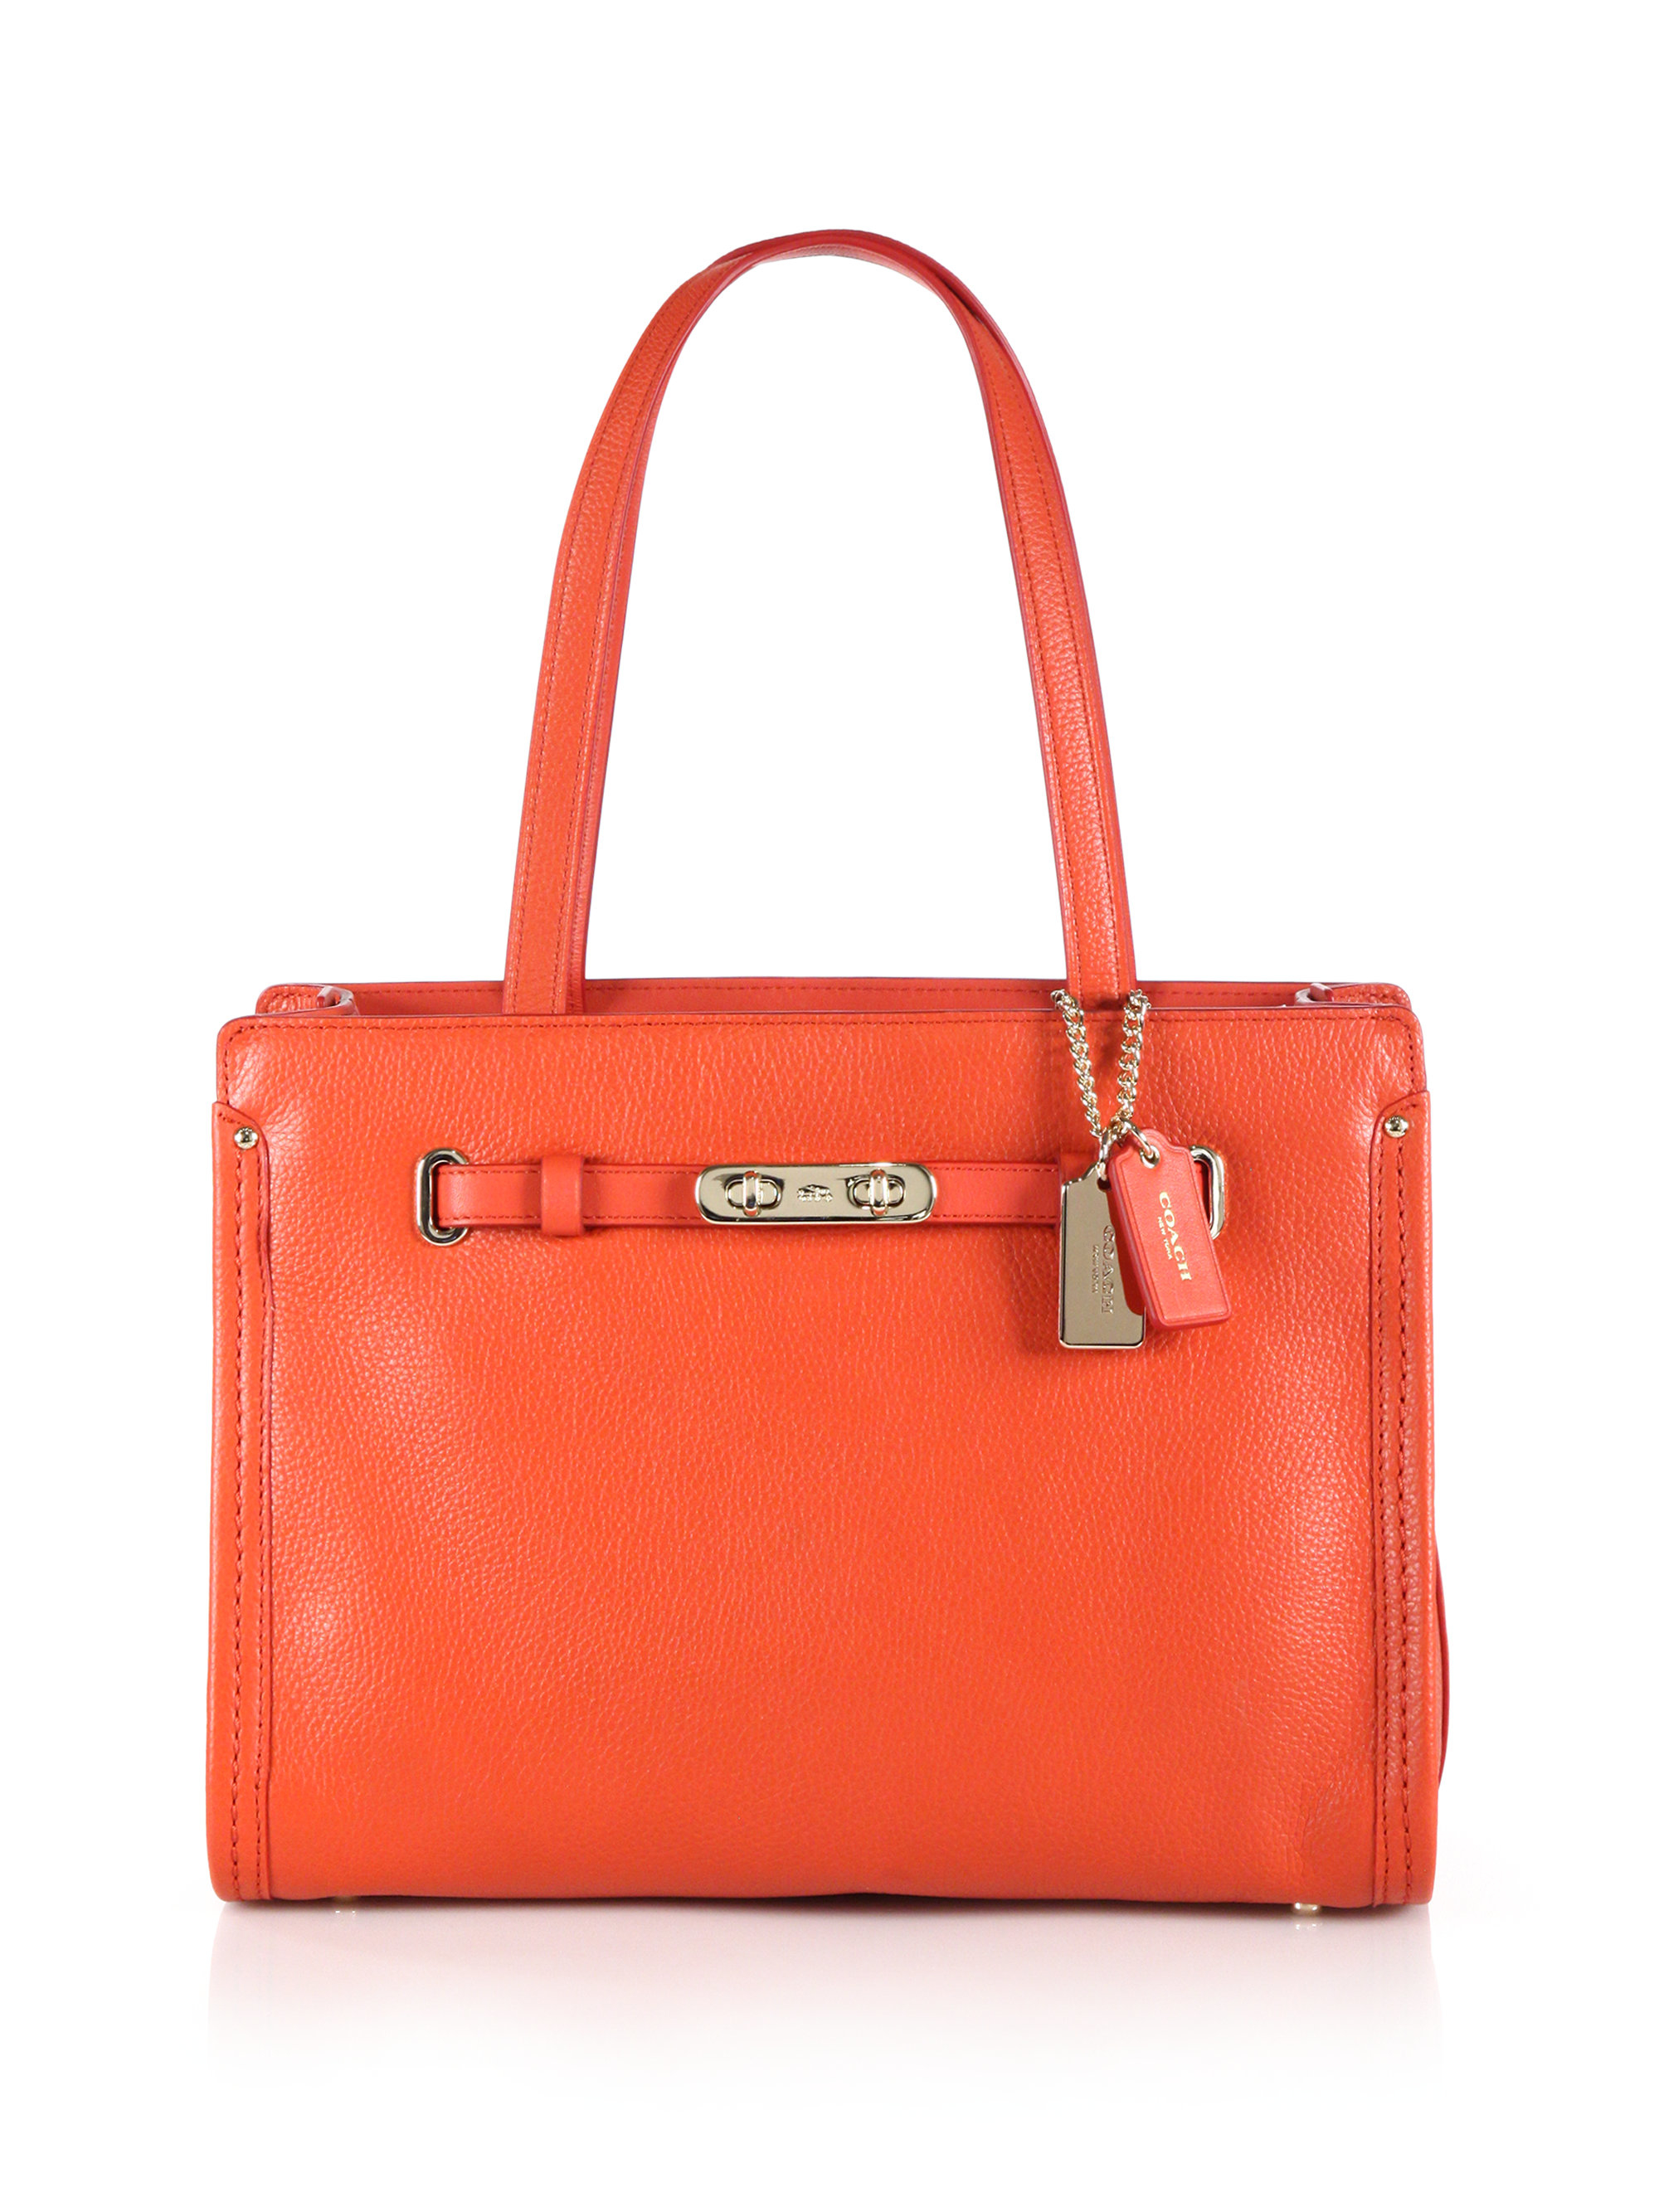 eb2cb71bd27a Lyst - COACH Swagger Small Leather Tote in Orange